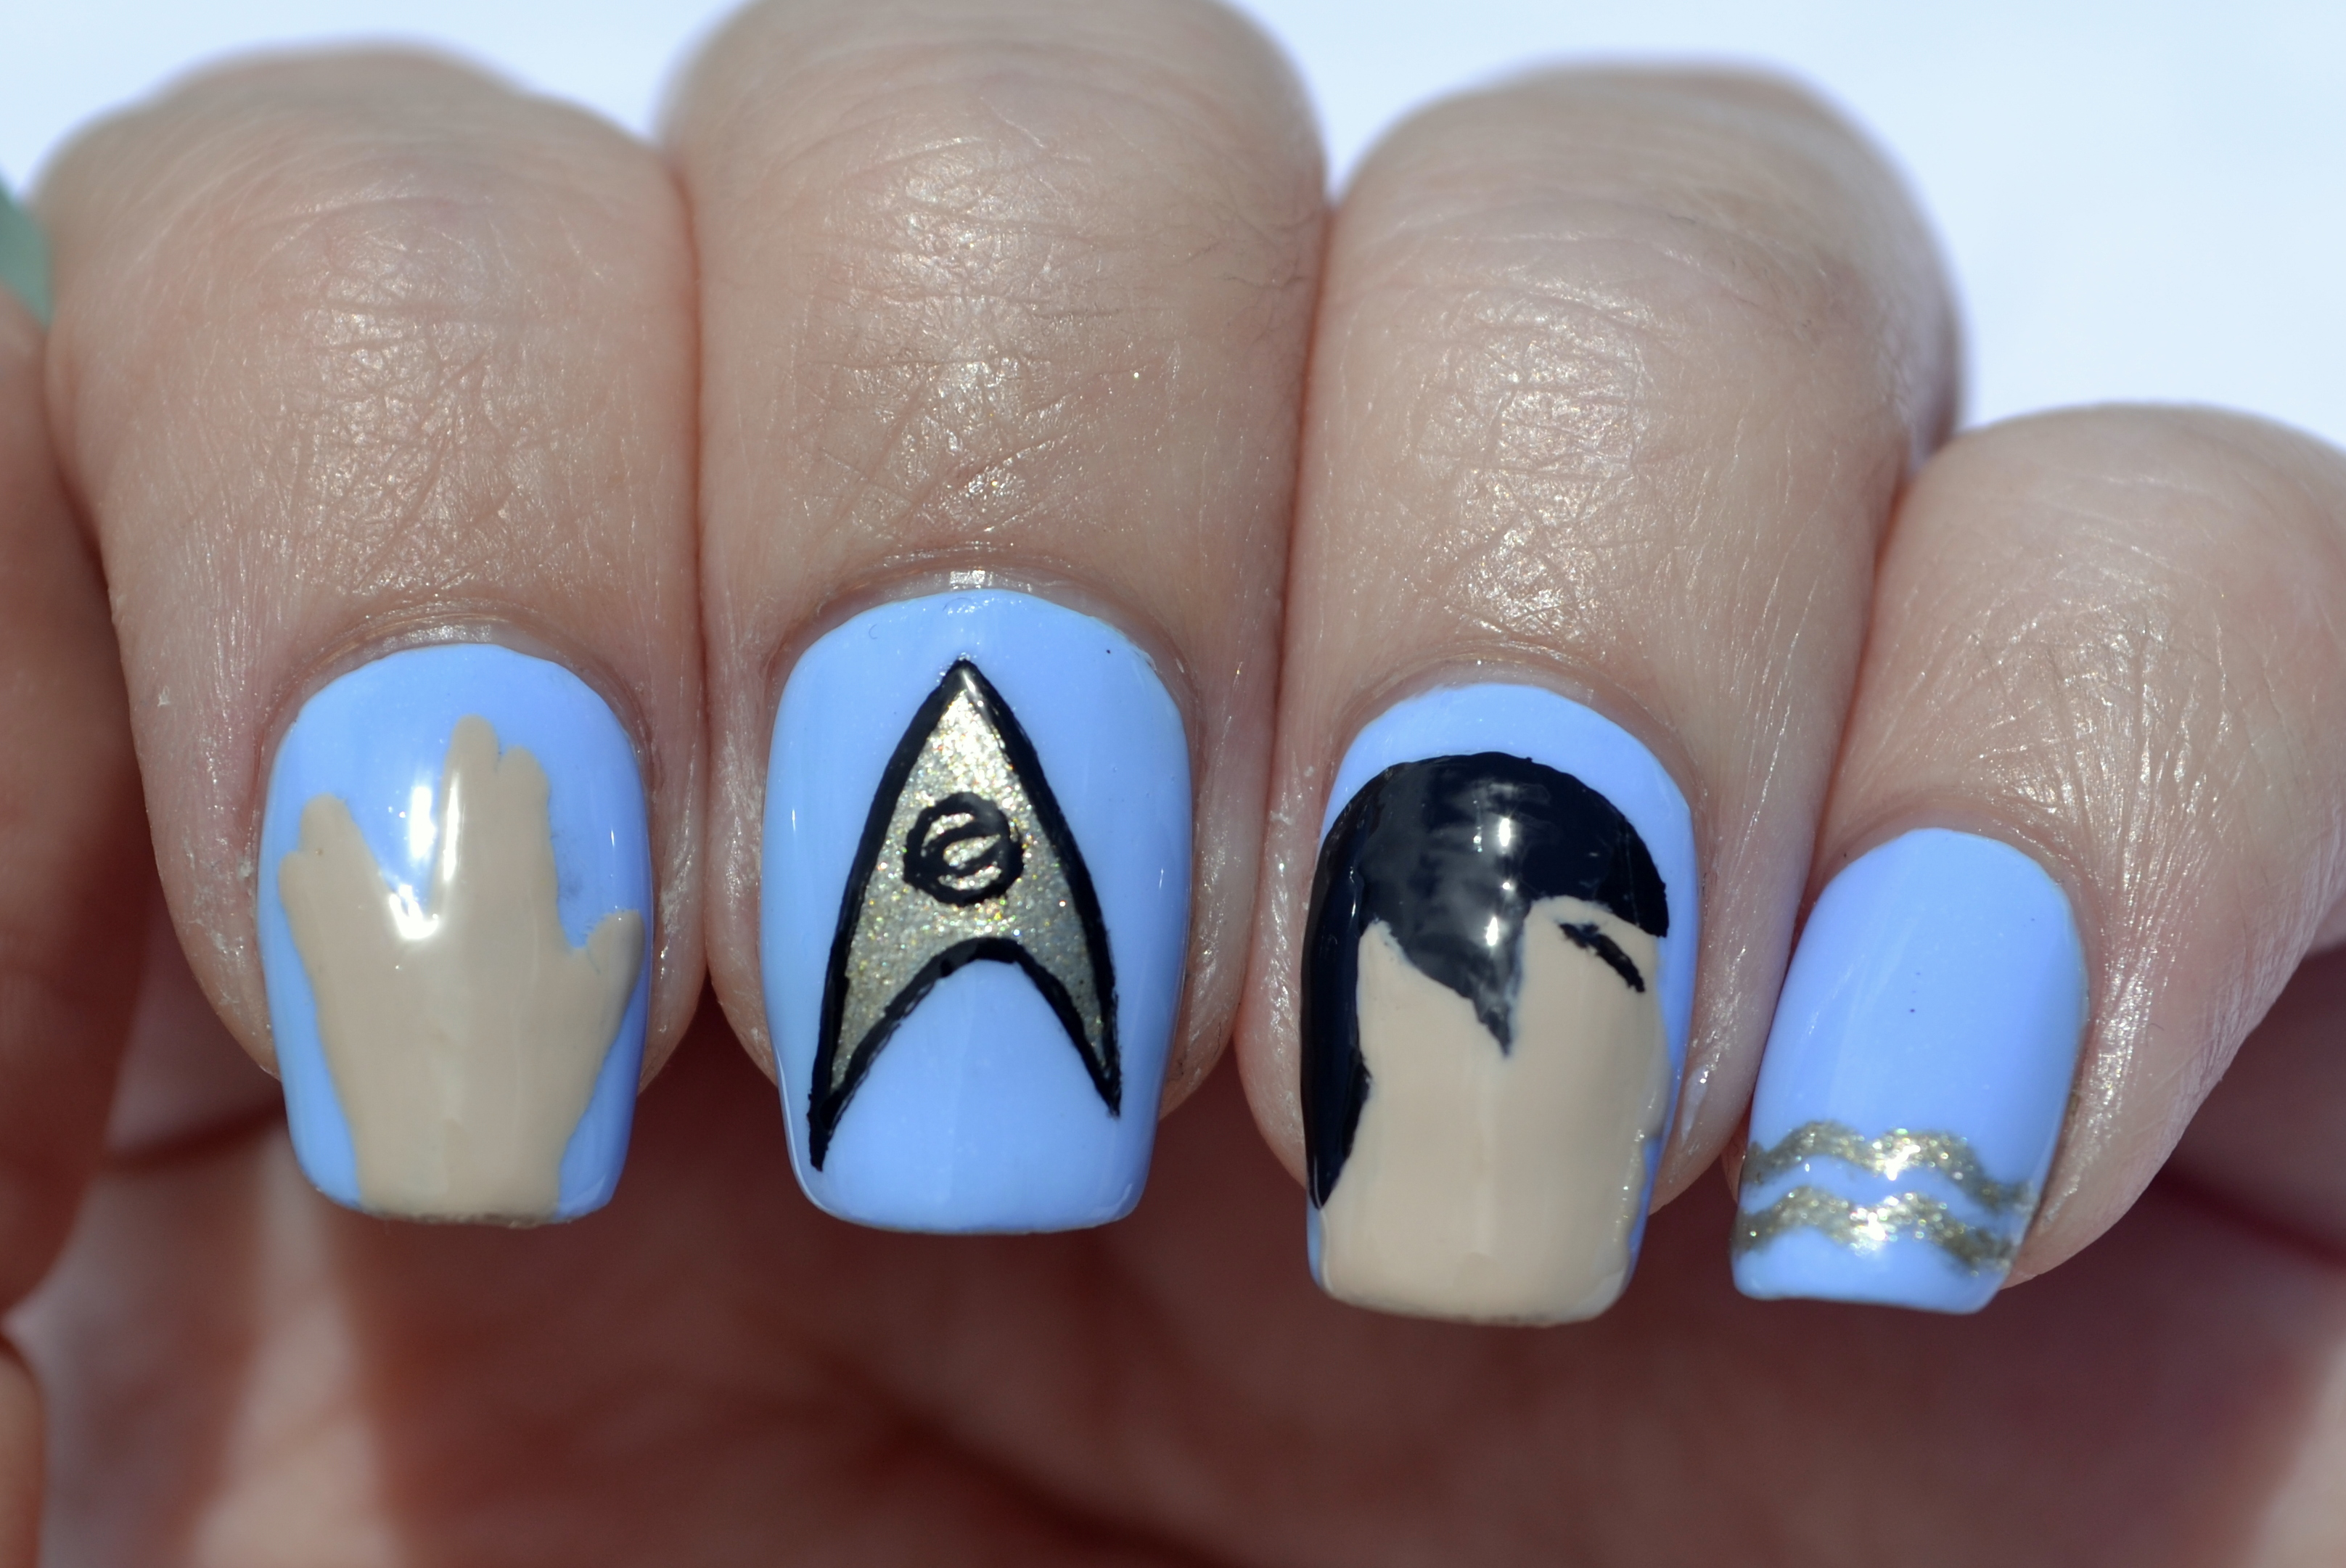 Nails The Final Frontier These Are The Voyages Of The Starship